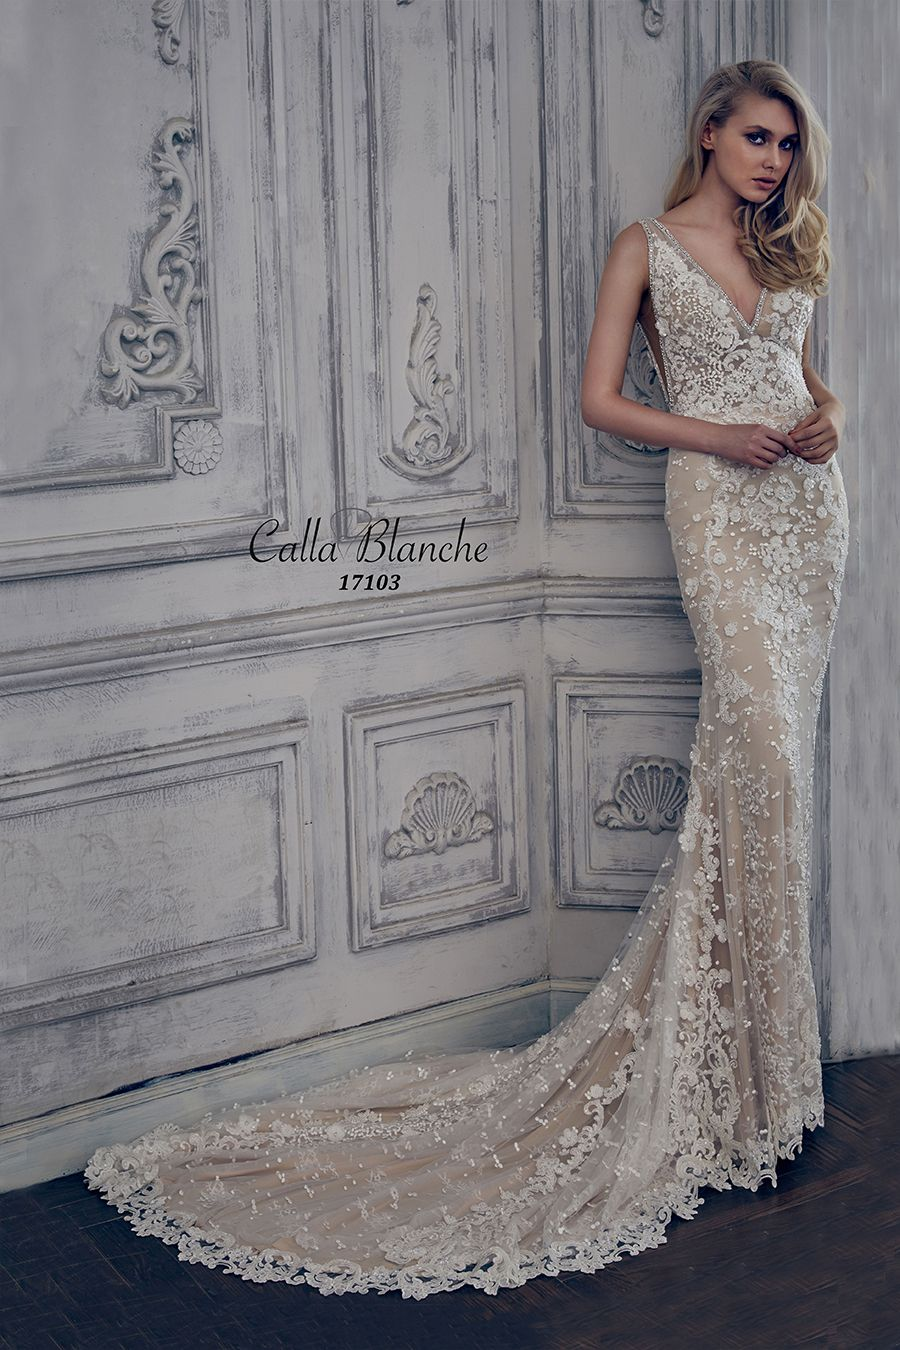 Calla Blanche, Reina, 17103, Sz 6, Ivory/LtNude, $3348. Available at ...